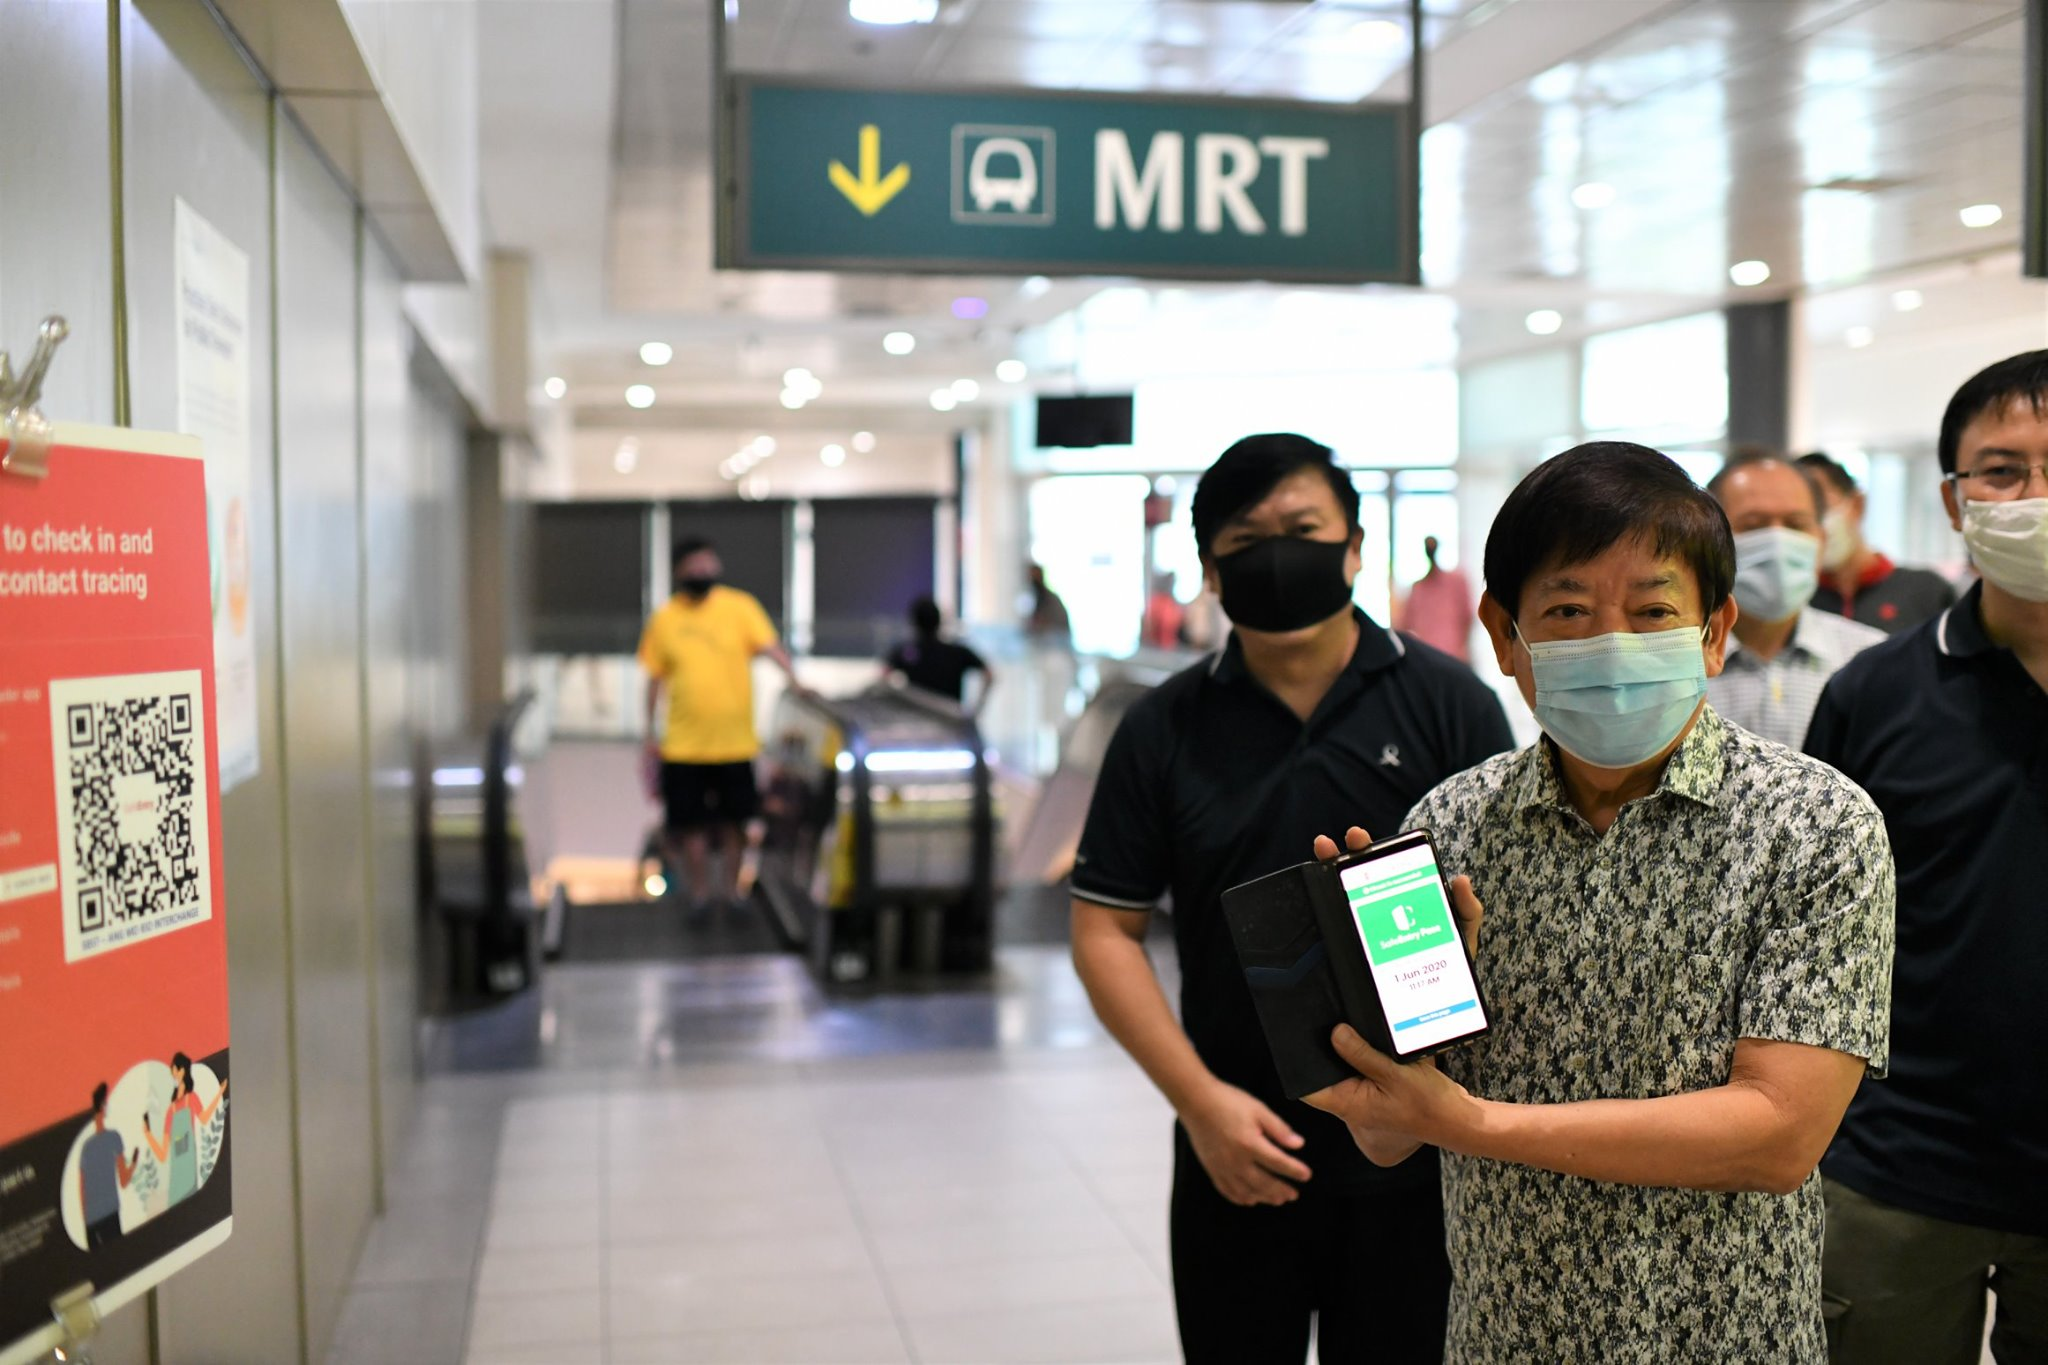 Checking in and out of places using SafeEntry is part of the new normal, said Minister Khaw Boon Wan. Photo courtesy: Facebook: Khaw Boon Wan